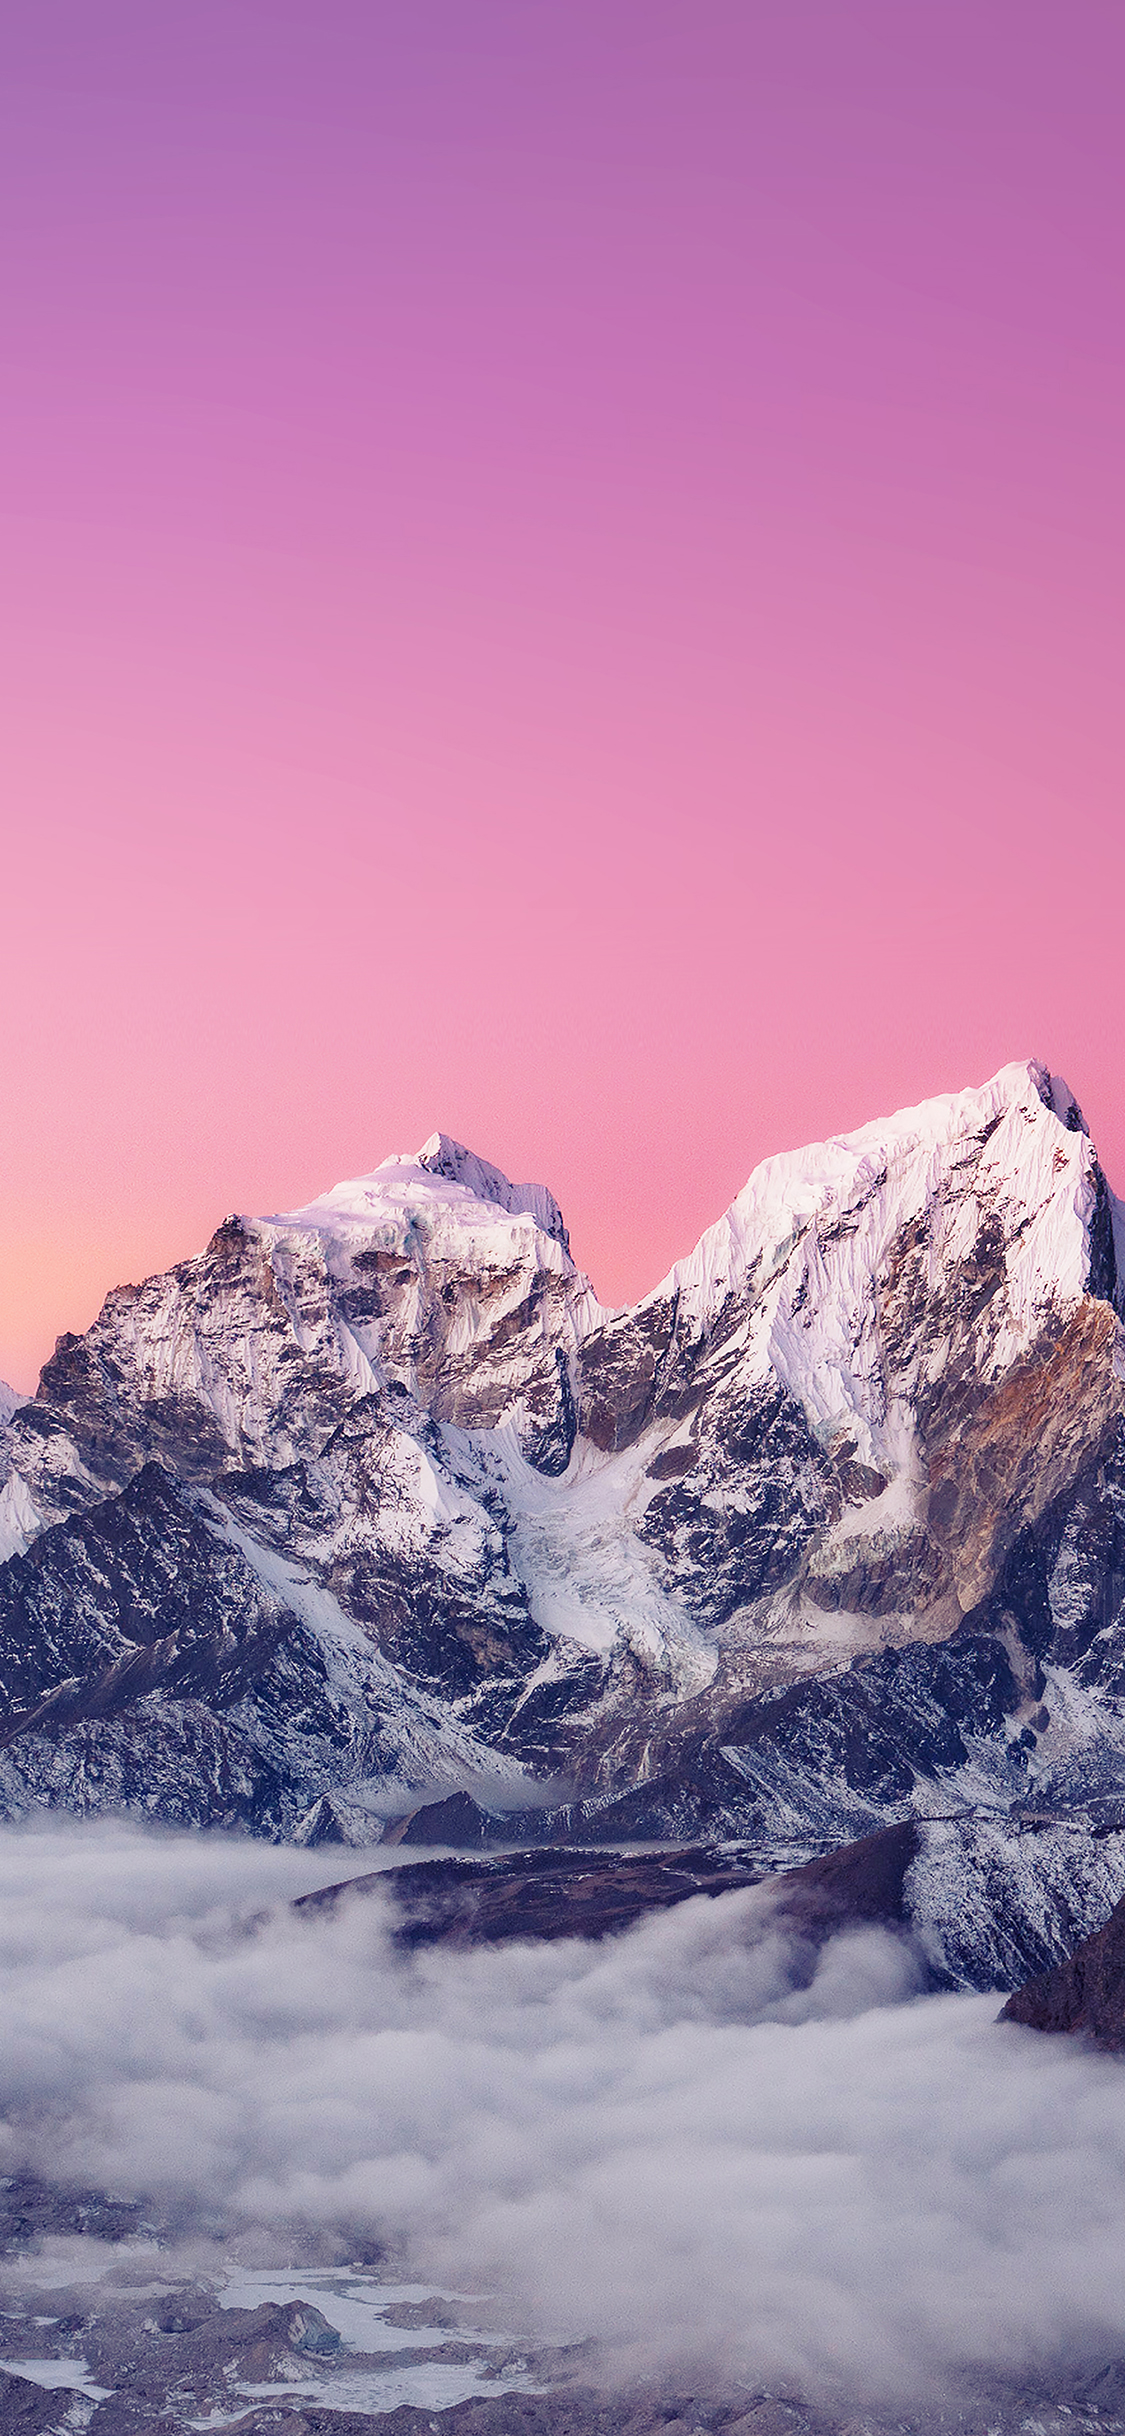 himalayan art essay The creation and contemplation of such art constitutes a religious act  nepal: a himalayan kingdom in  it really help me to write essay about nepal culture.